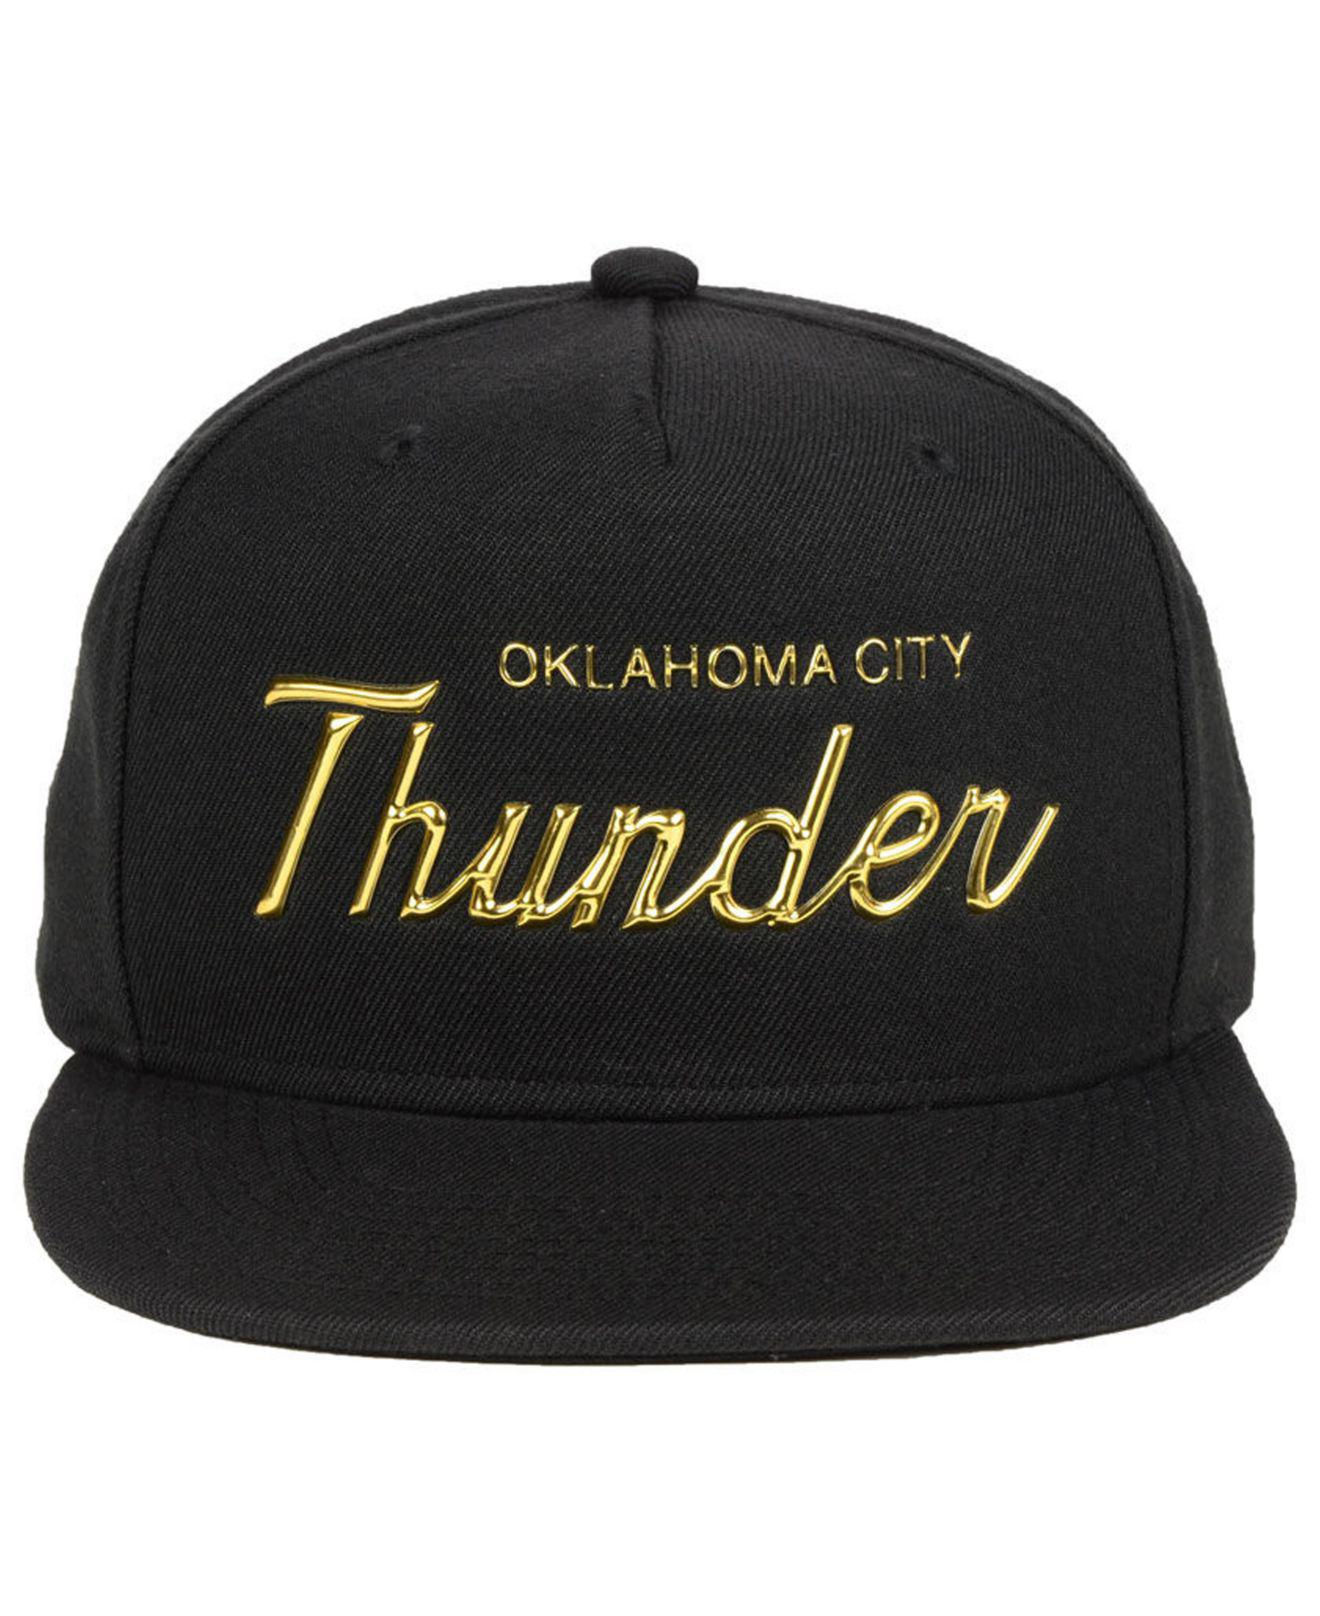 meet a2738 6432f Mitchell   Ness Oklahoma City Thunder Metallic Tempered Snapback Cap in  Metallic for Men - Lyst